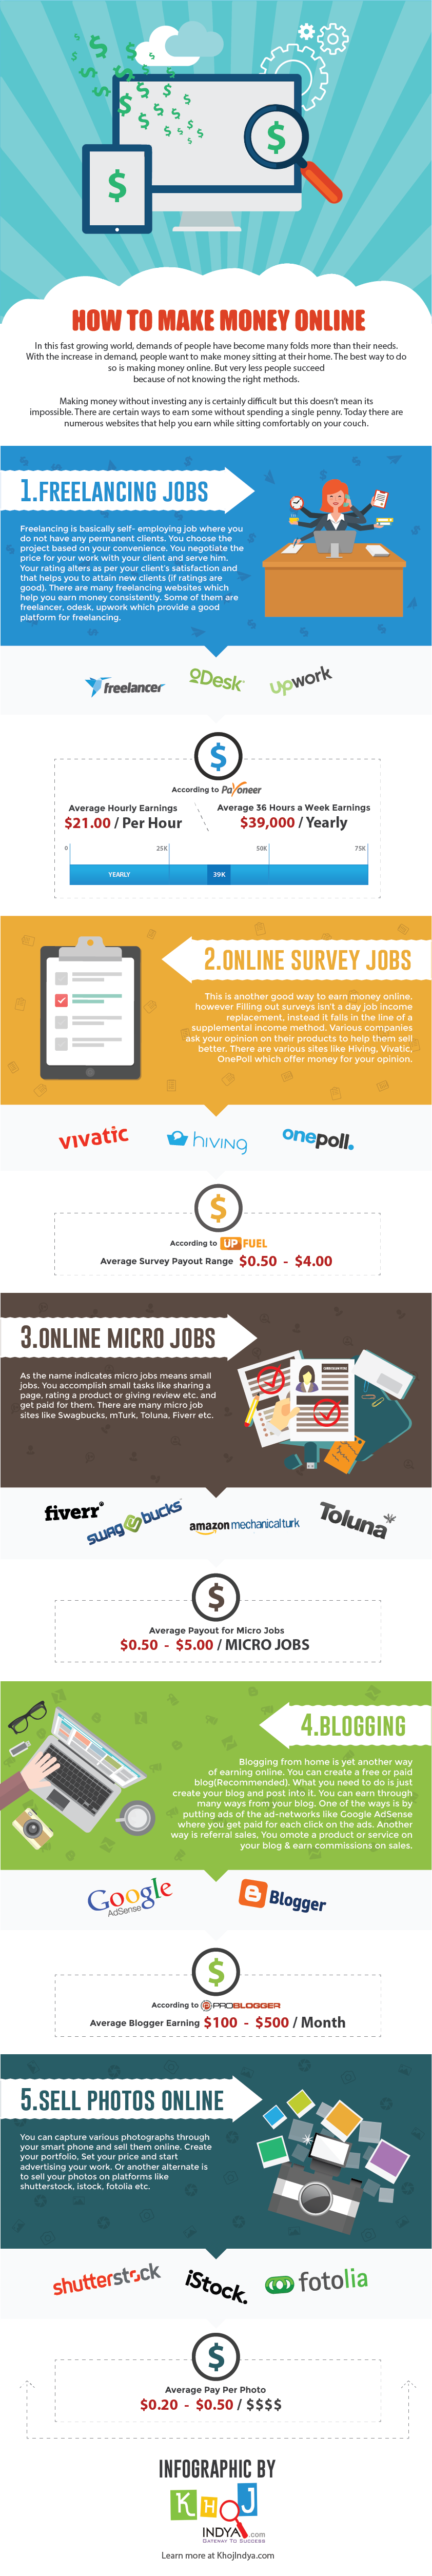 How To Make Money Online #infographic